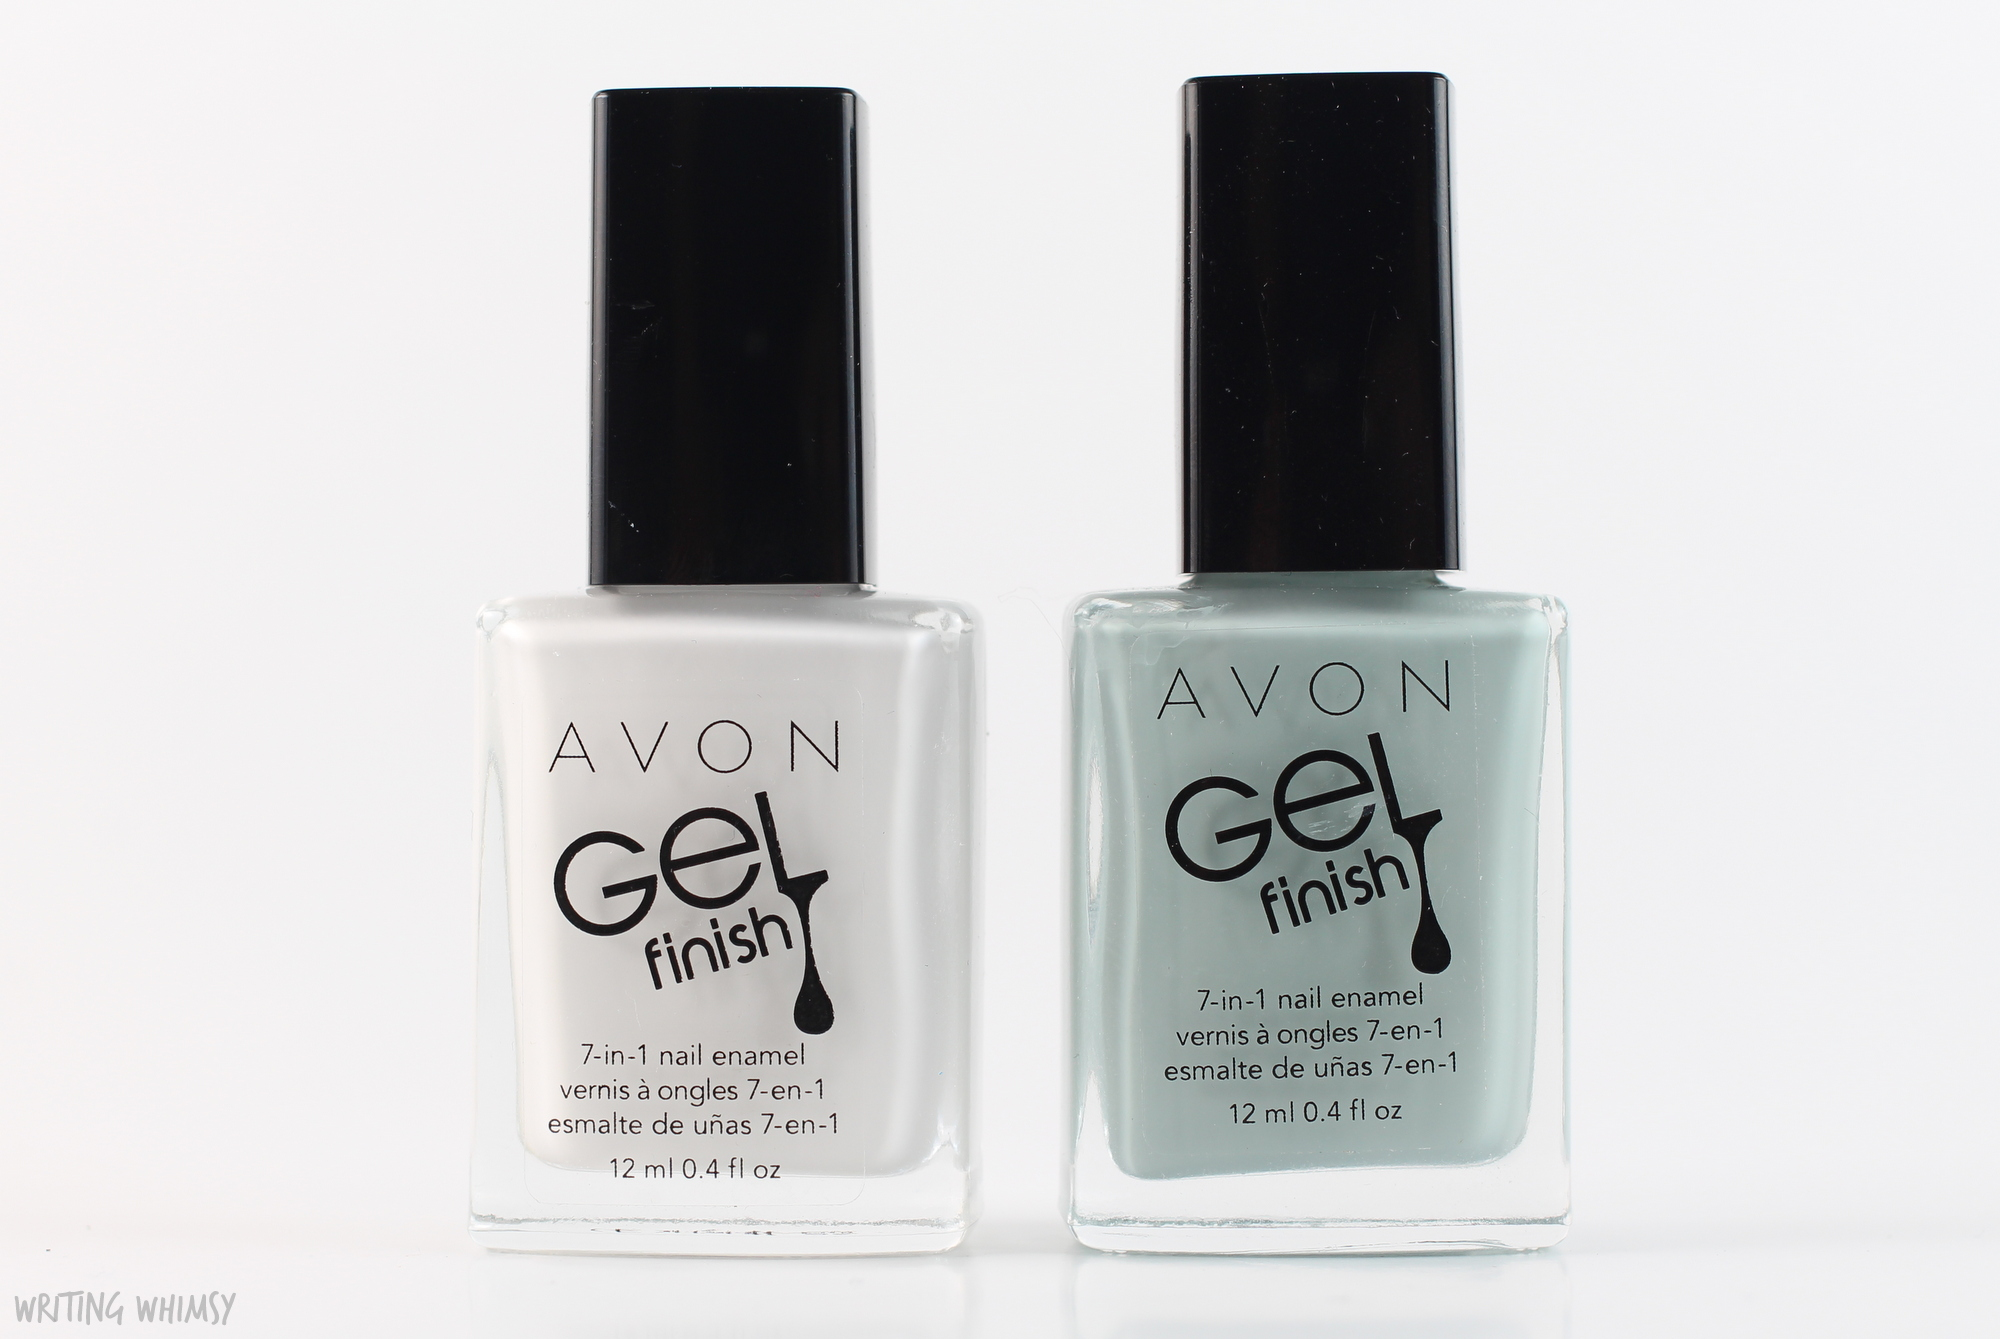 Avon Gel Finish 7-in-1 Nail Enamel 2